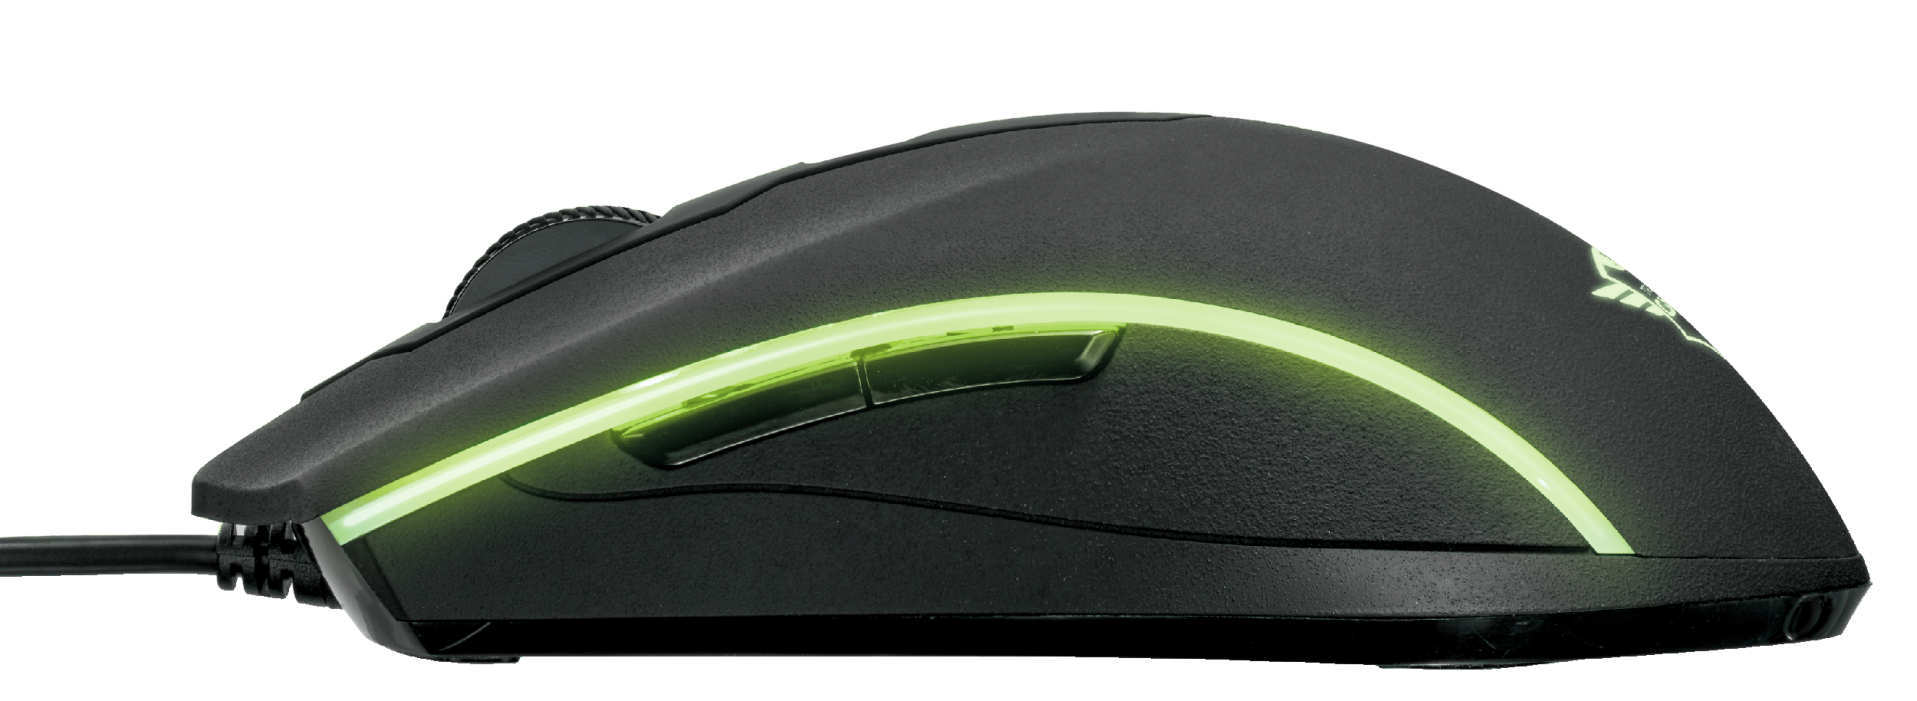 GXT 177 Rivan RGB Gaming Mouse-Side